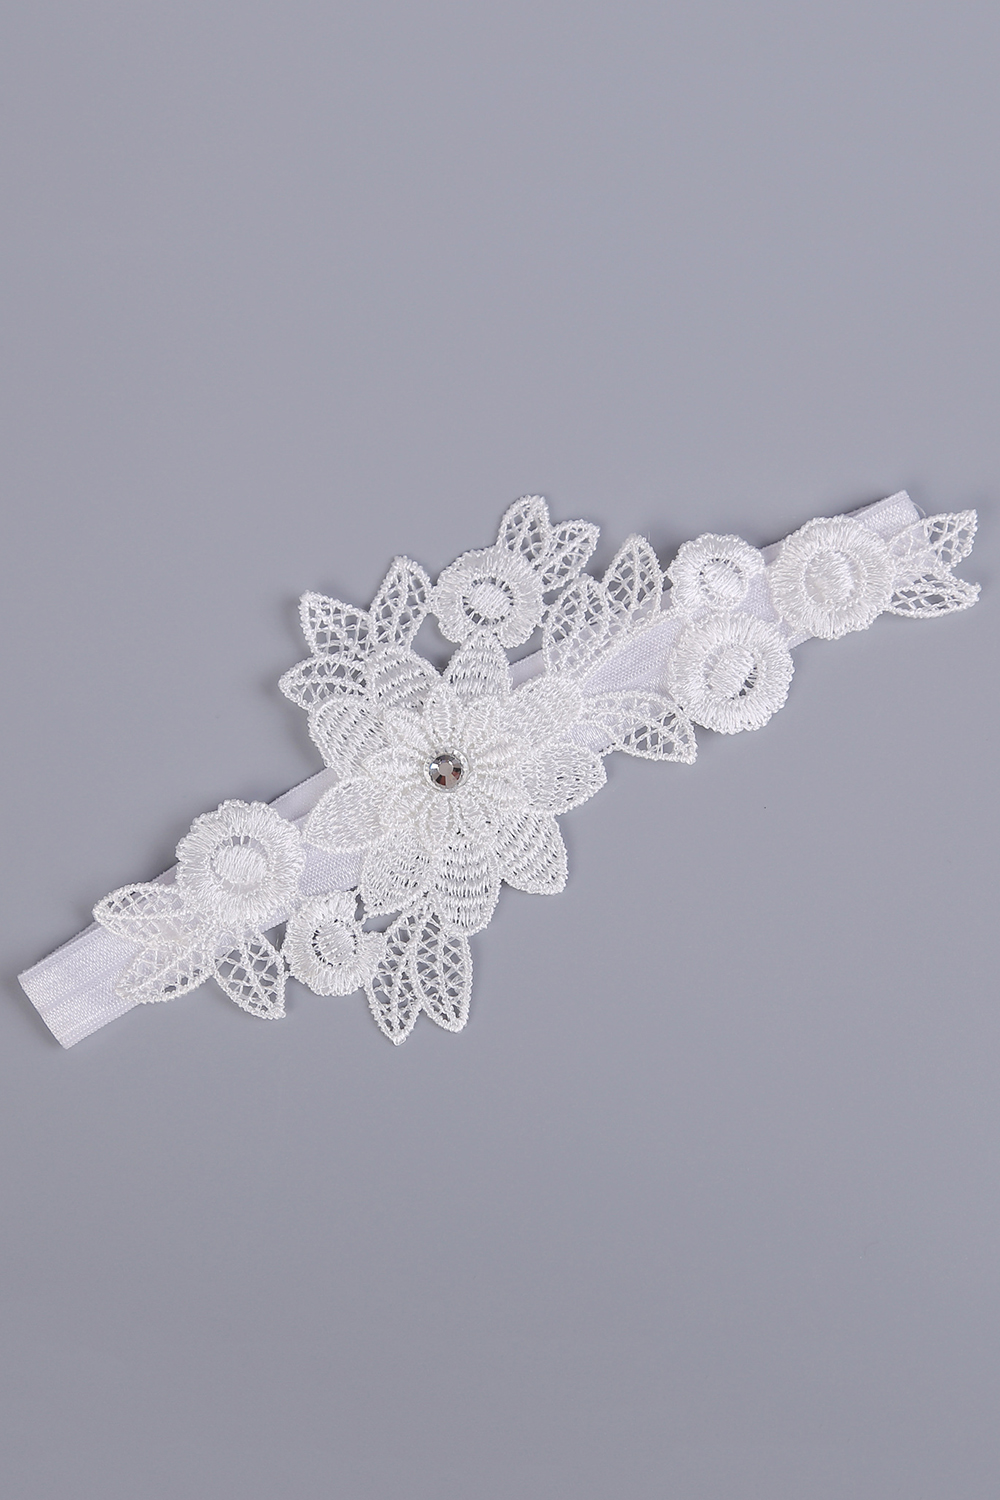 Weddings & Events Bridal Gloves Fast Deliver Wedding Gloves 2018 Hot-selling Vintage Lace Bridal Leg Garter With Blue Rhinestones Ivory Appliques Wedding Accessories Fi034